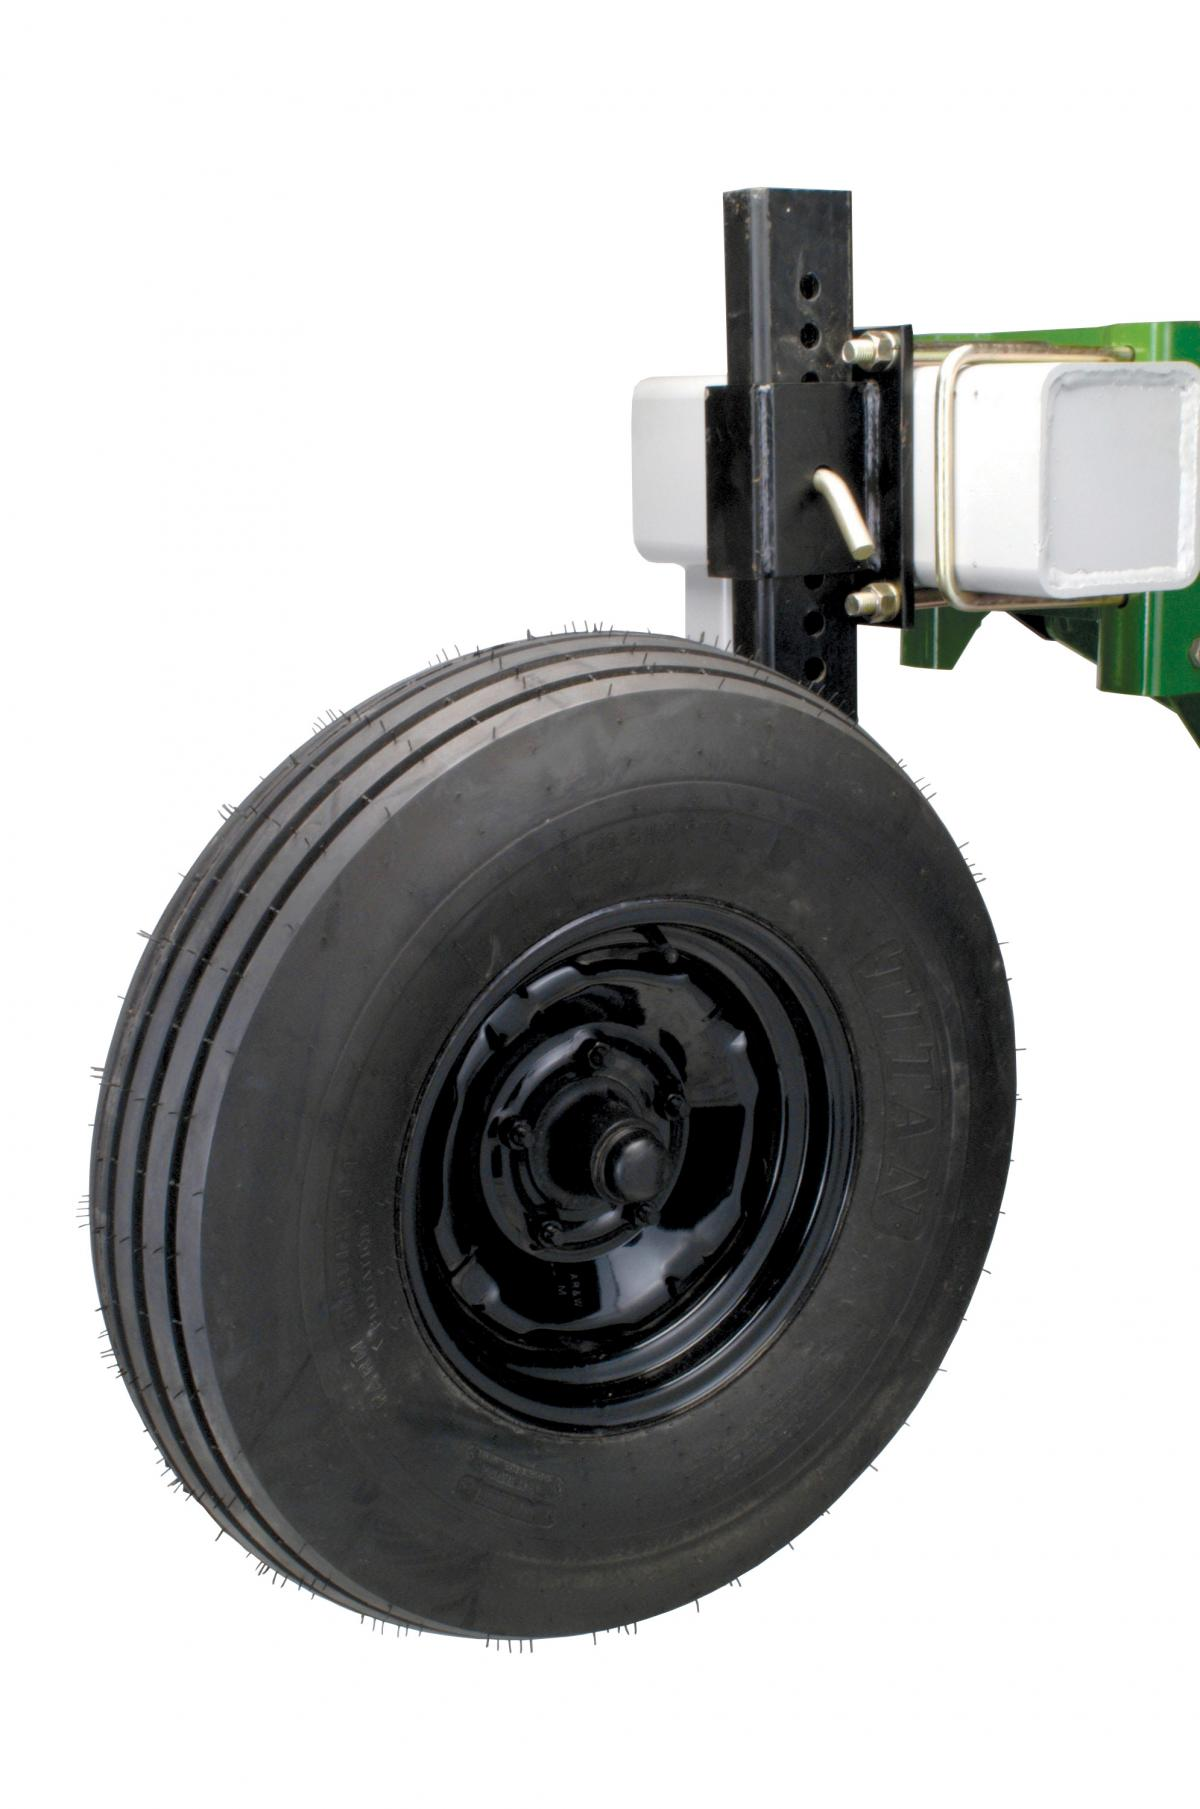 The wheels for the conventional rotary hoes